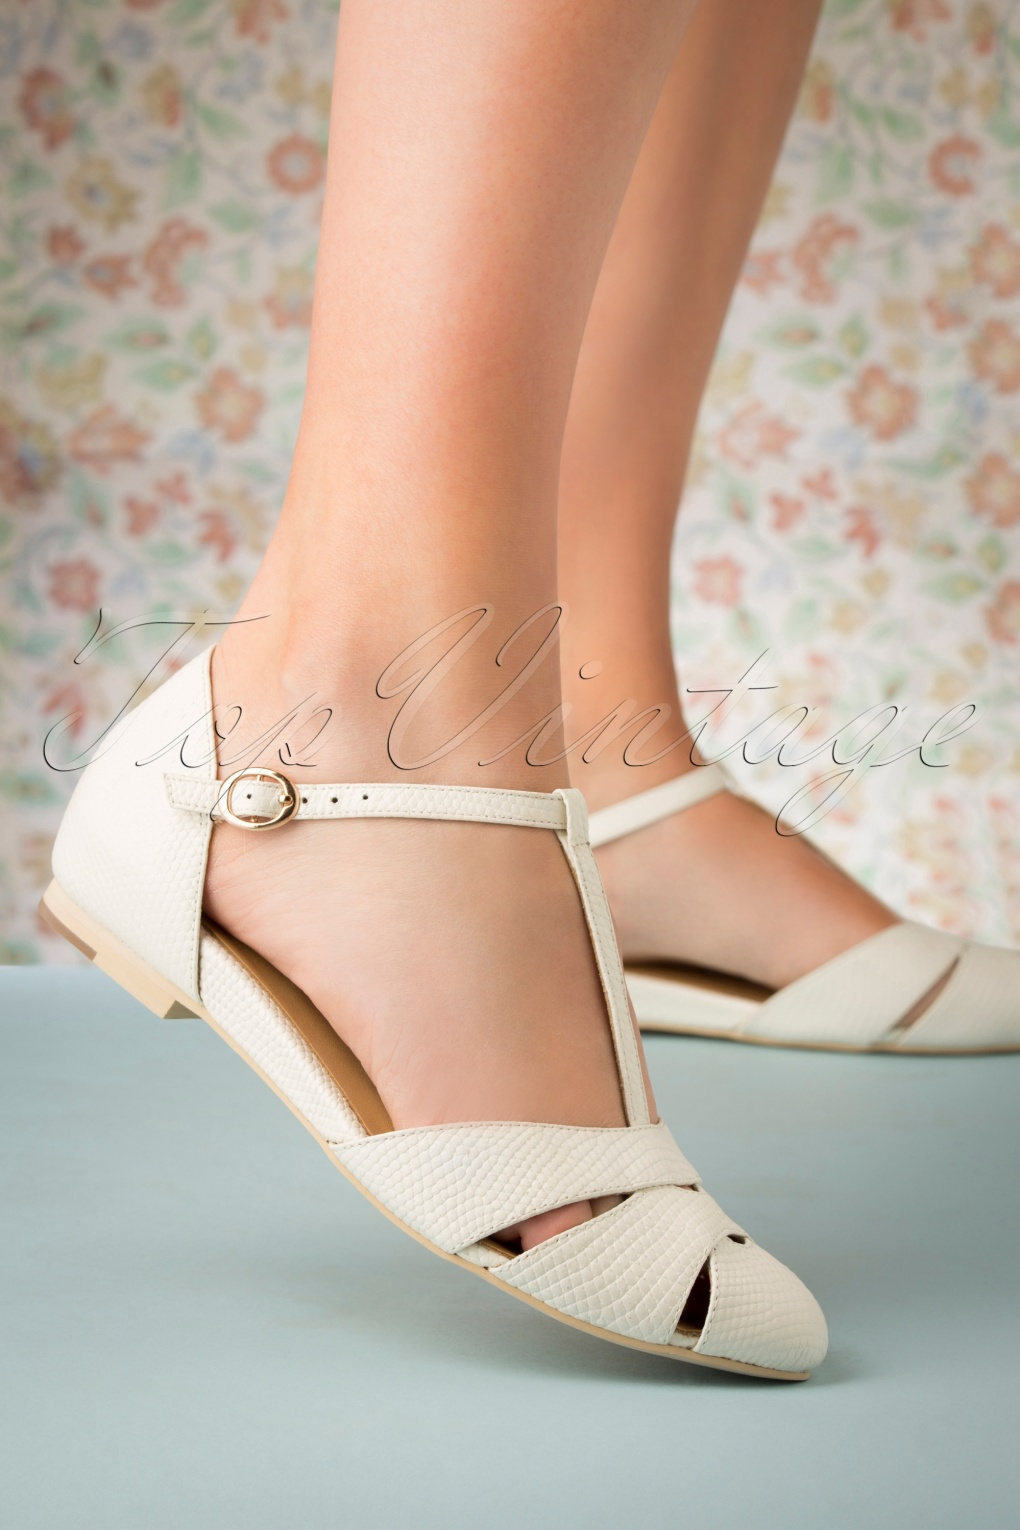 Pin Up Shoes- Heels, Pumps & Flats 50s Sardinia T-Strap Flats in Ivory �105.29 AT vintagedancer.com